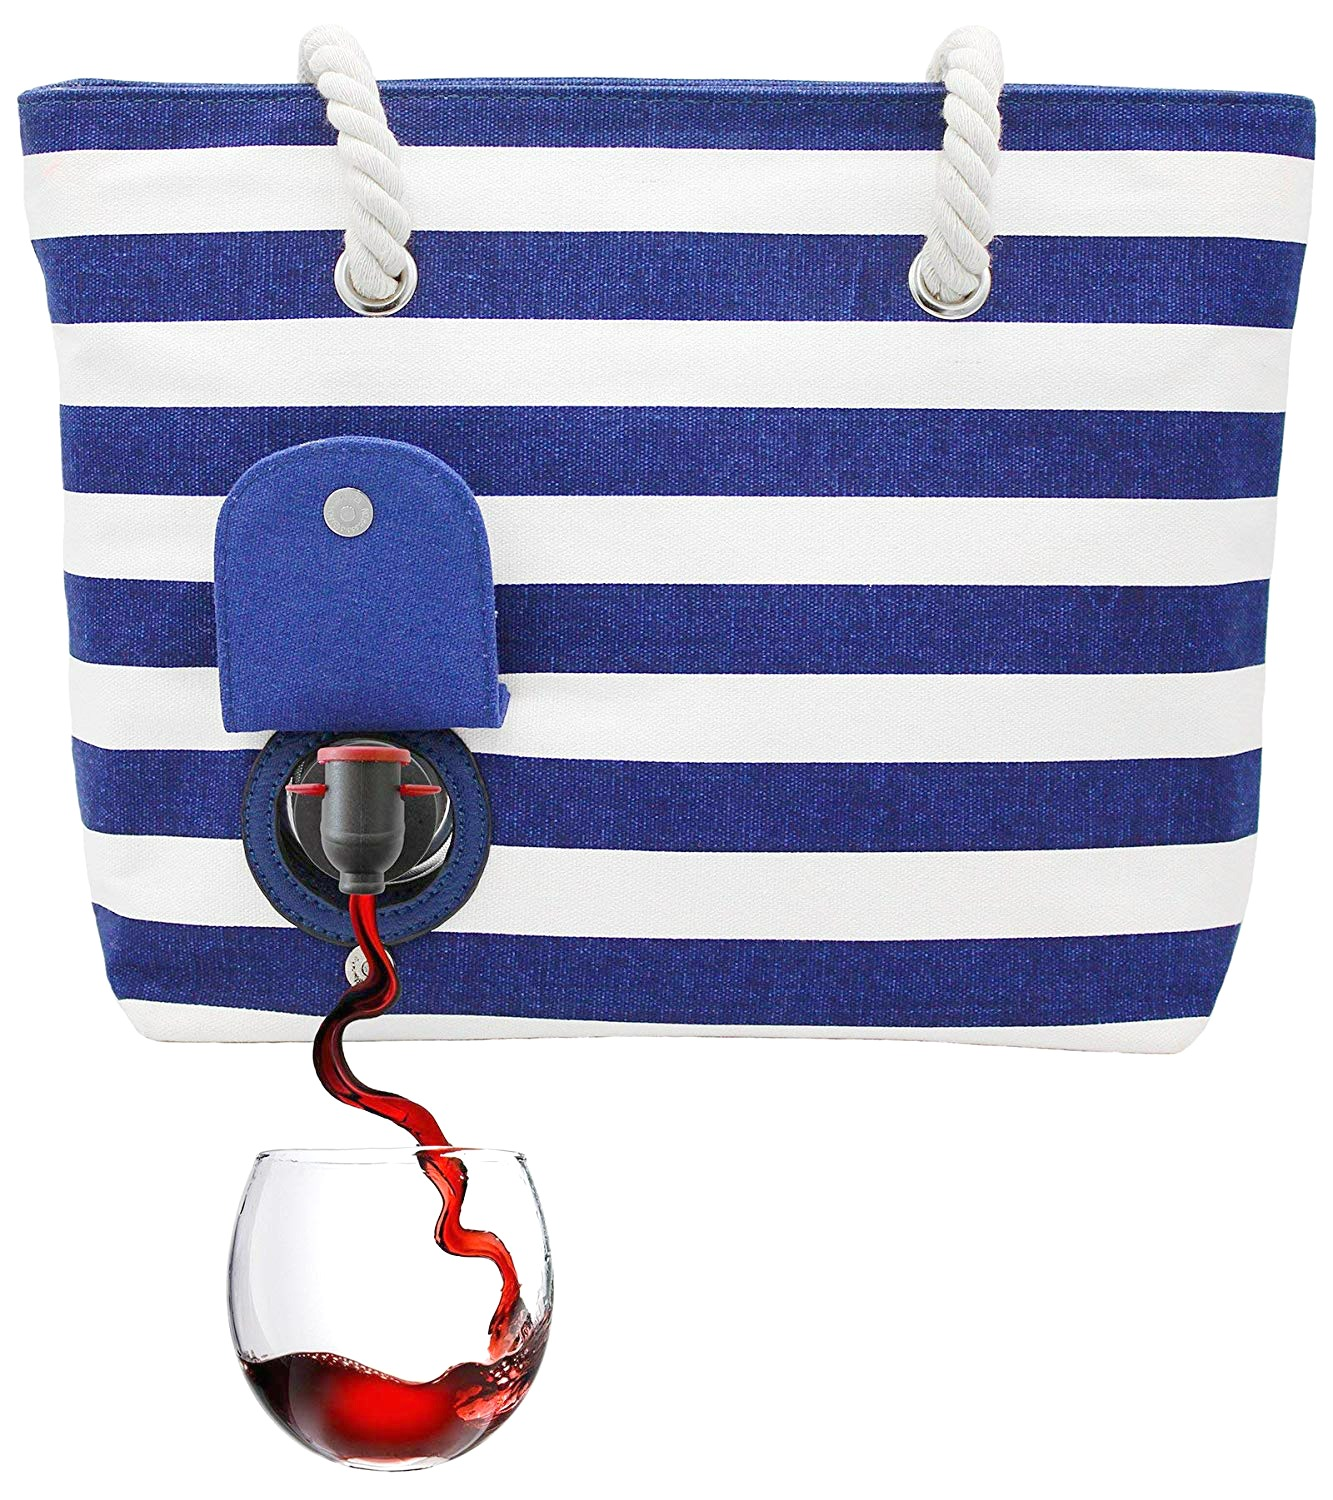 A nautical looking tote bag conceals a wine bag inside that can be served right from the bag.